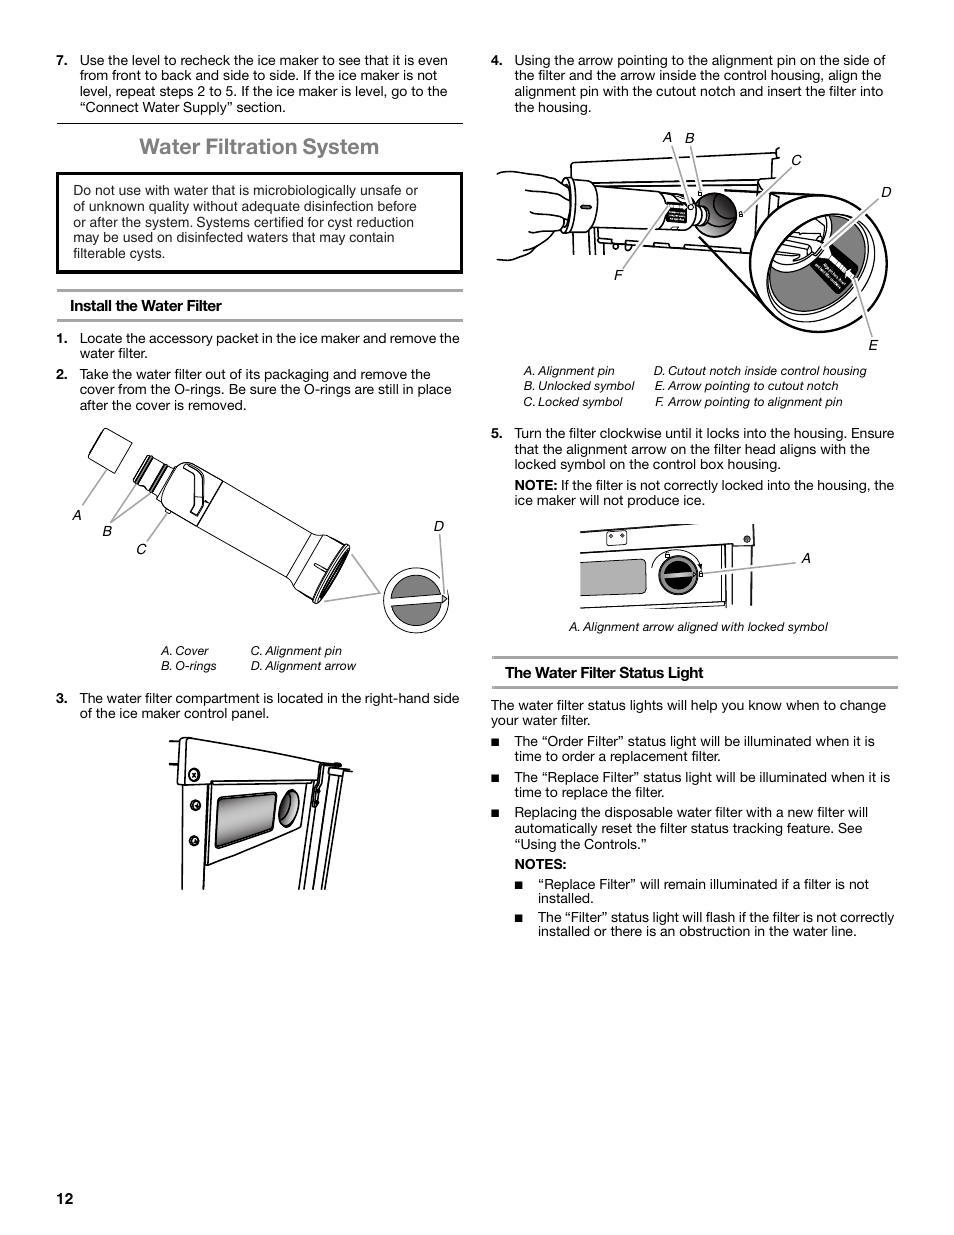 Water filtration system | Whirlpool GI15NDXZS User Manual